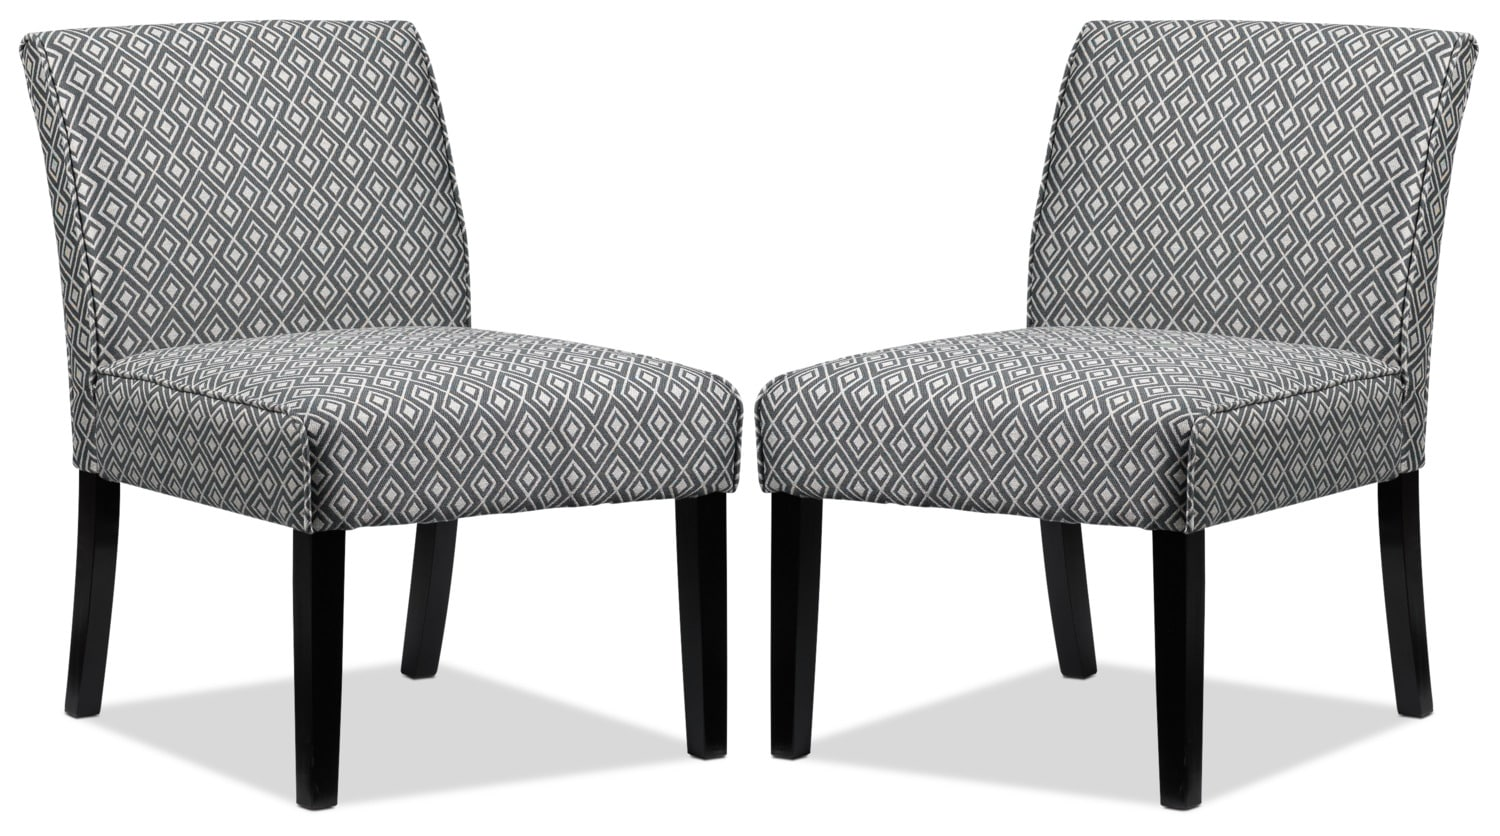 Upton 2-Pack of Slipper Chairs - Grey